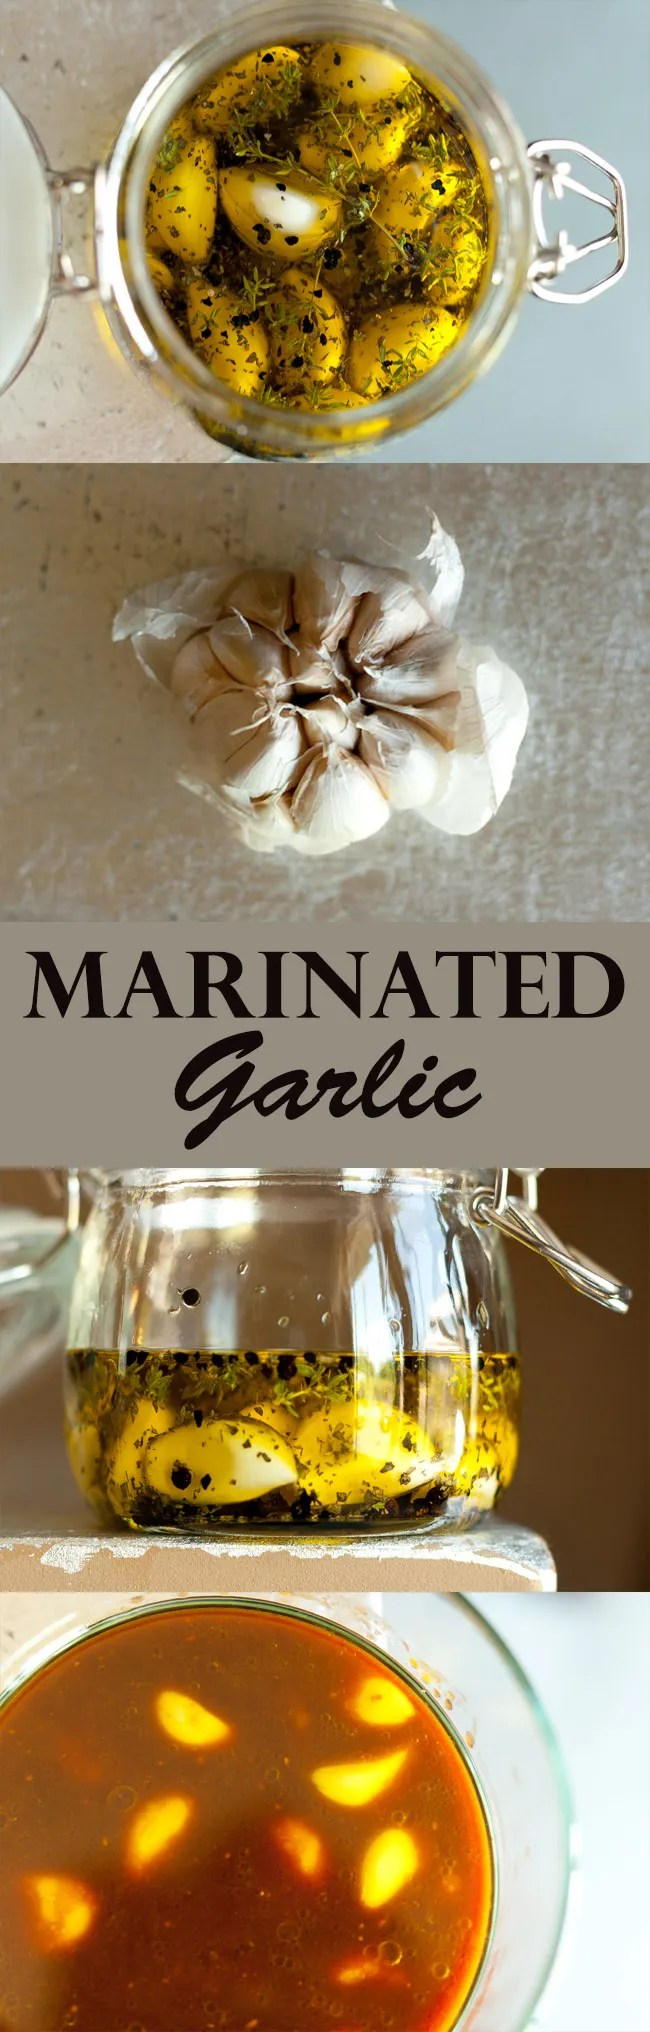 Marinated Garlic… two ways - Herb & Spice Marinated Garlic and Japanese-style Soy-Miso Marinated Garlic